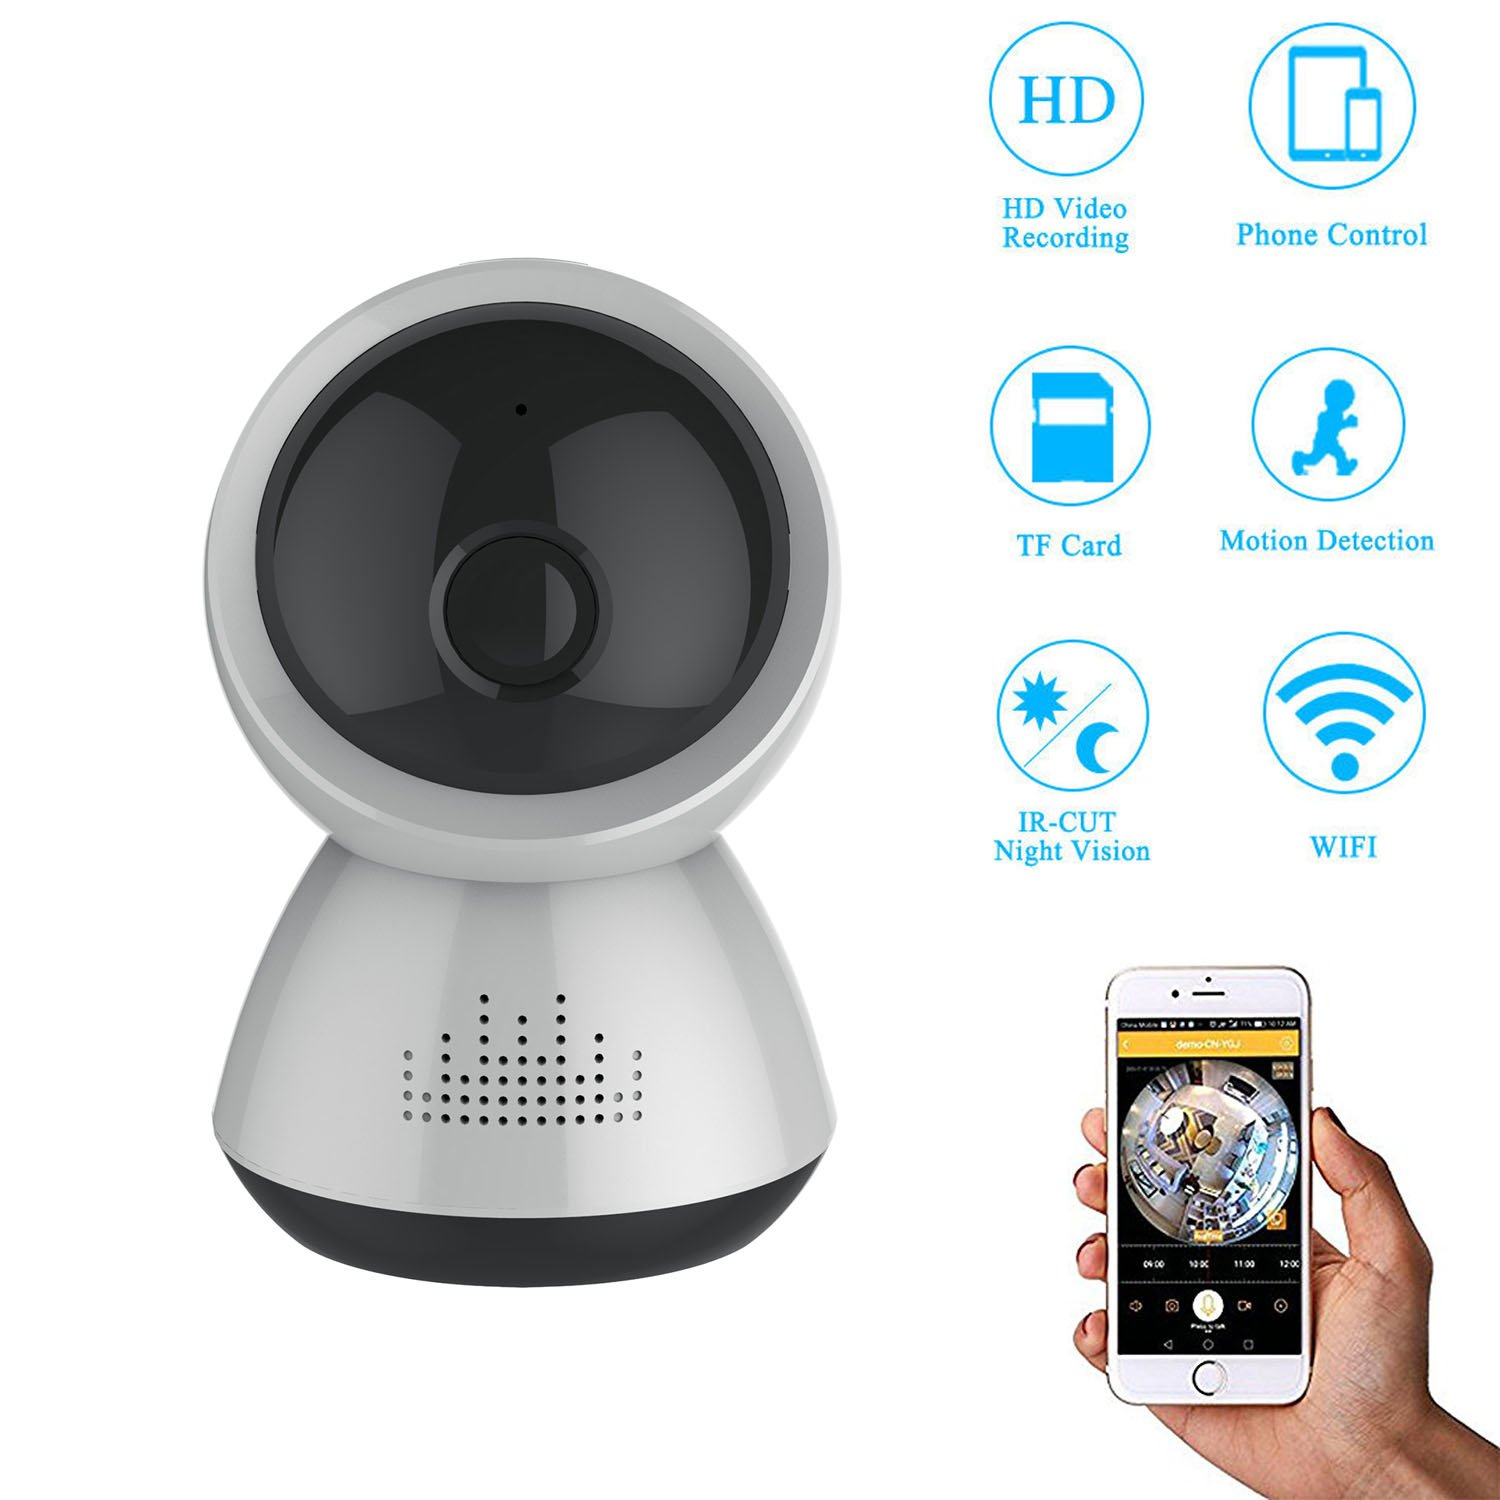 eoqo 1080P HD Little Snowman 180°View Angle Dome IP Camera Wireless Network IP Security Surveillance with Night Vision and Wide Angle Lens